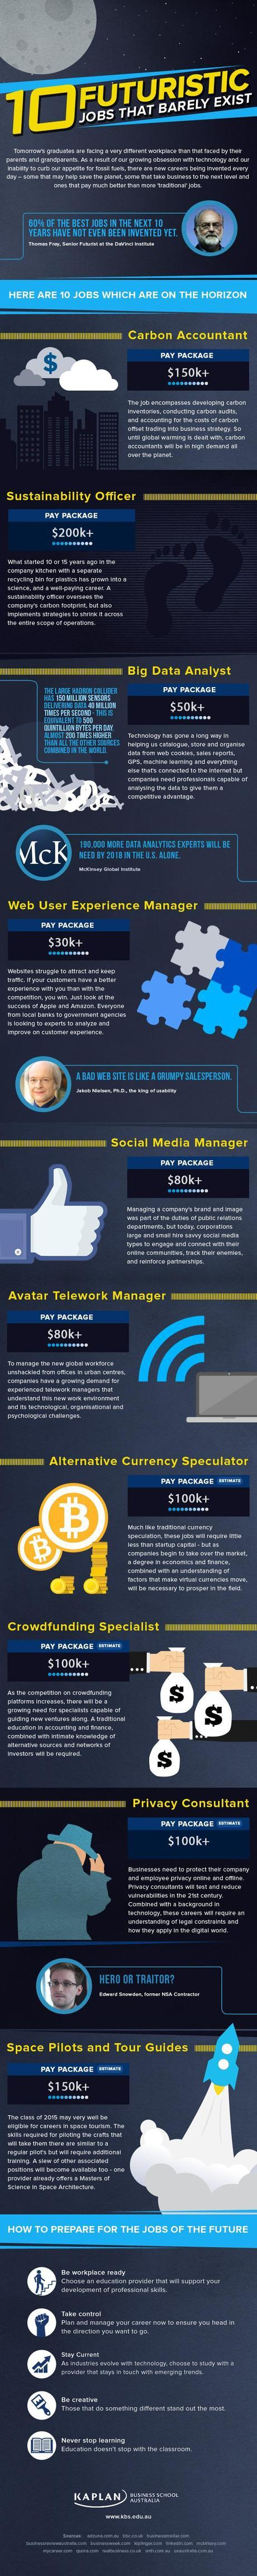 10-futuristic-jobs-that-barely-exist-infographic